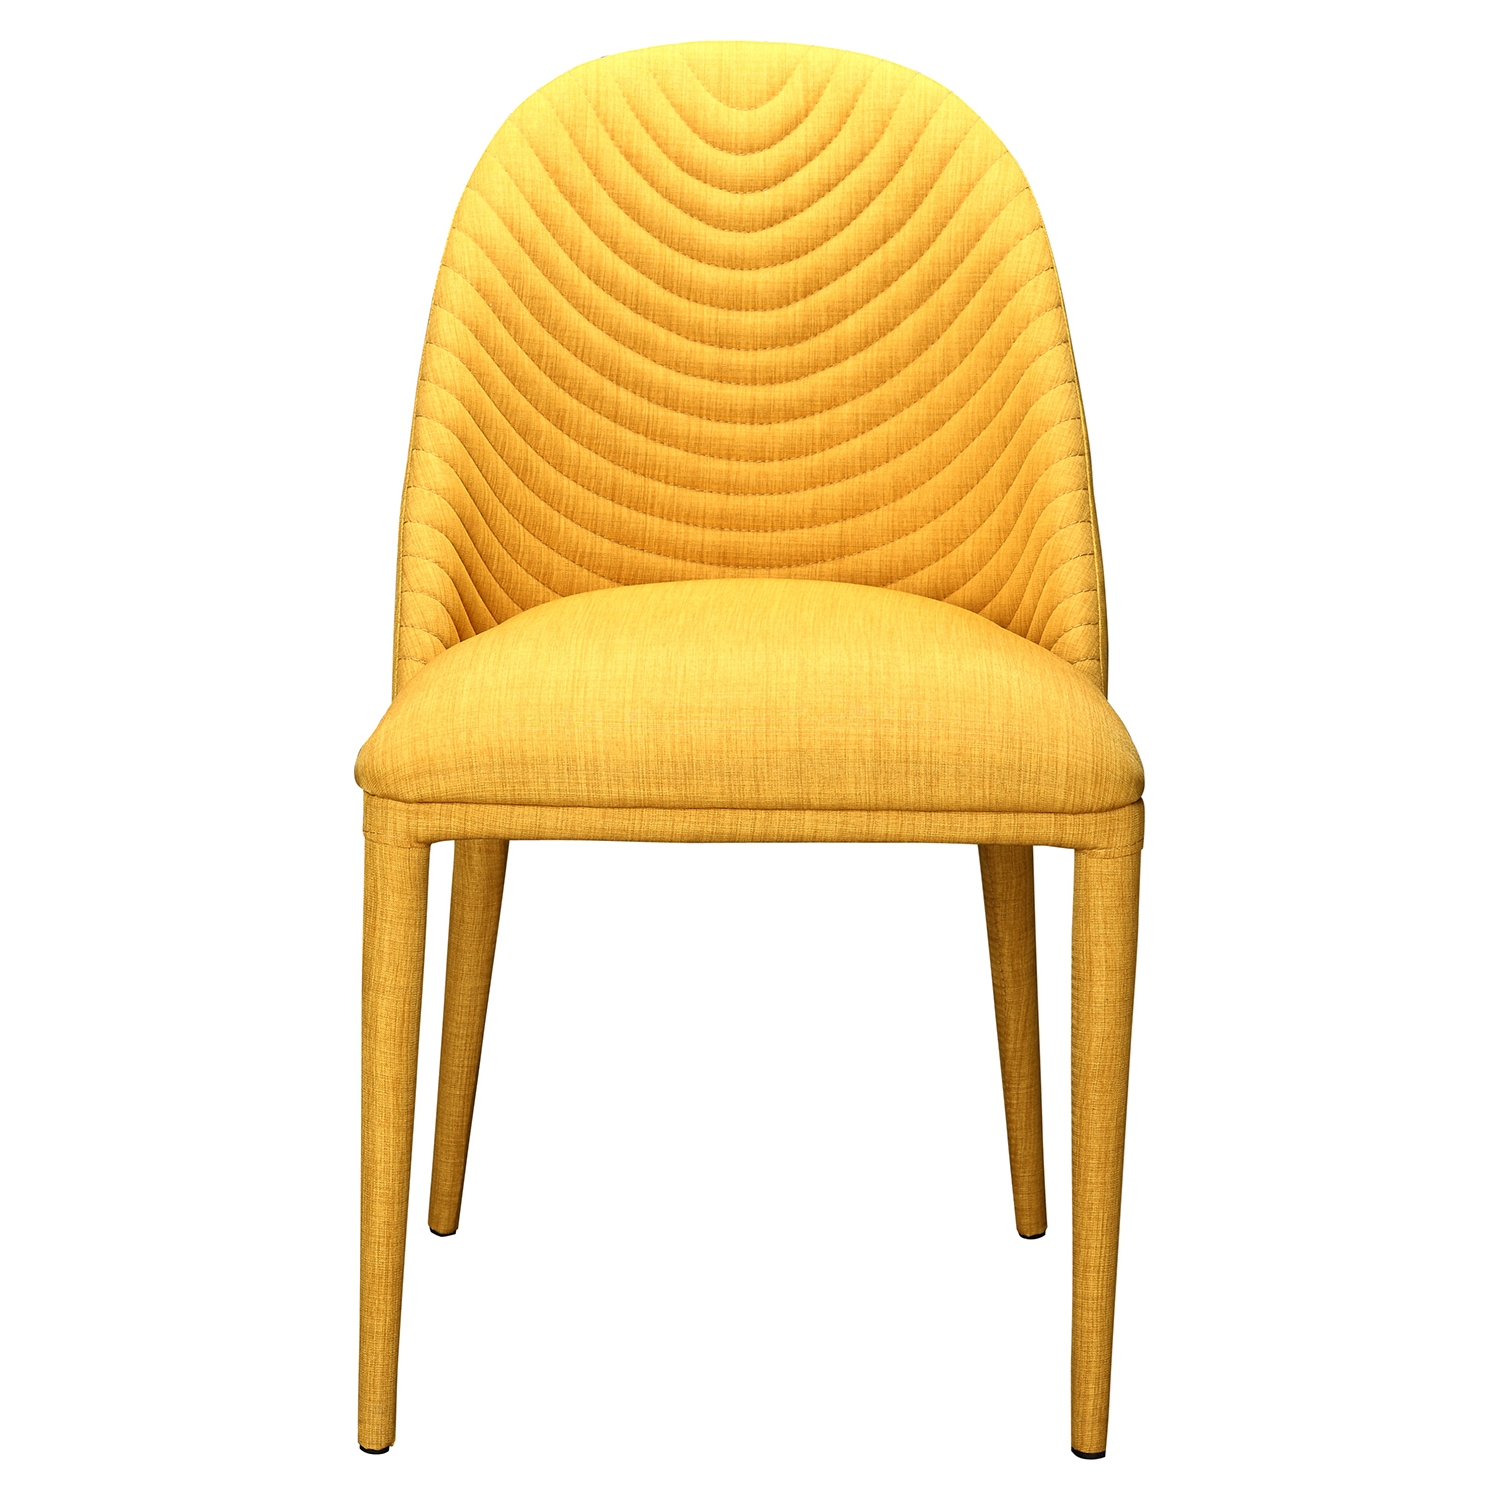 Libby Dining Chair - Yellow (Set of 2) - MOES-EH-1100-09